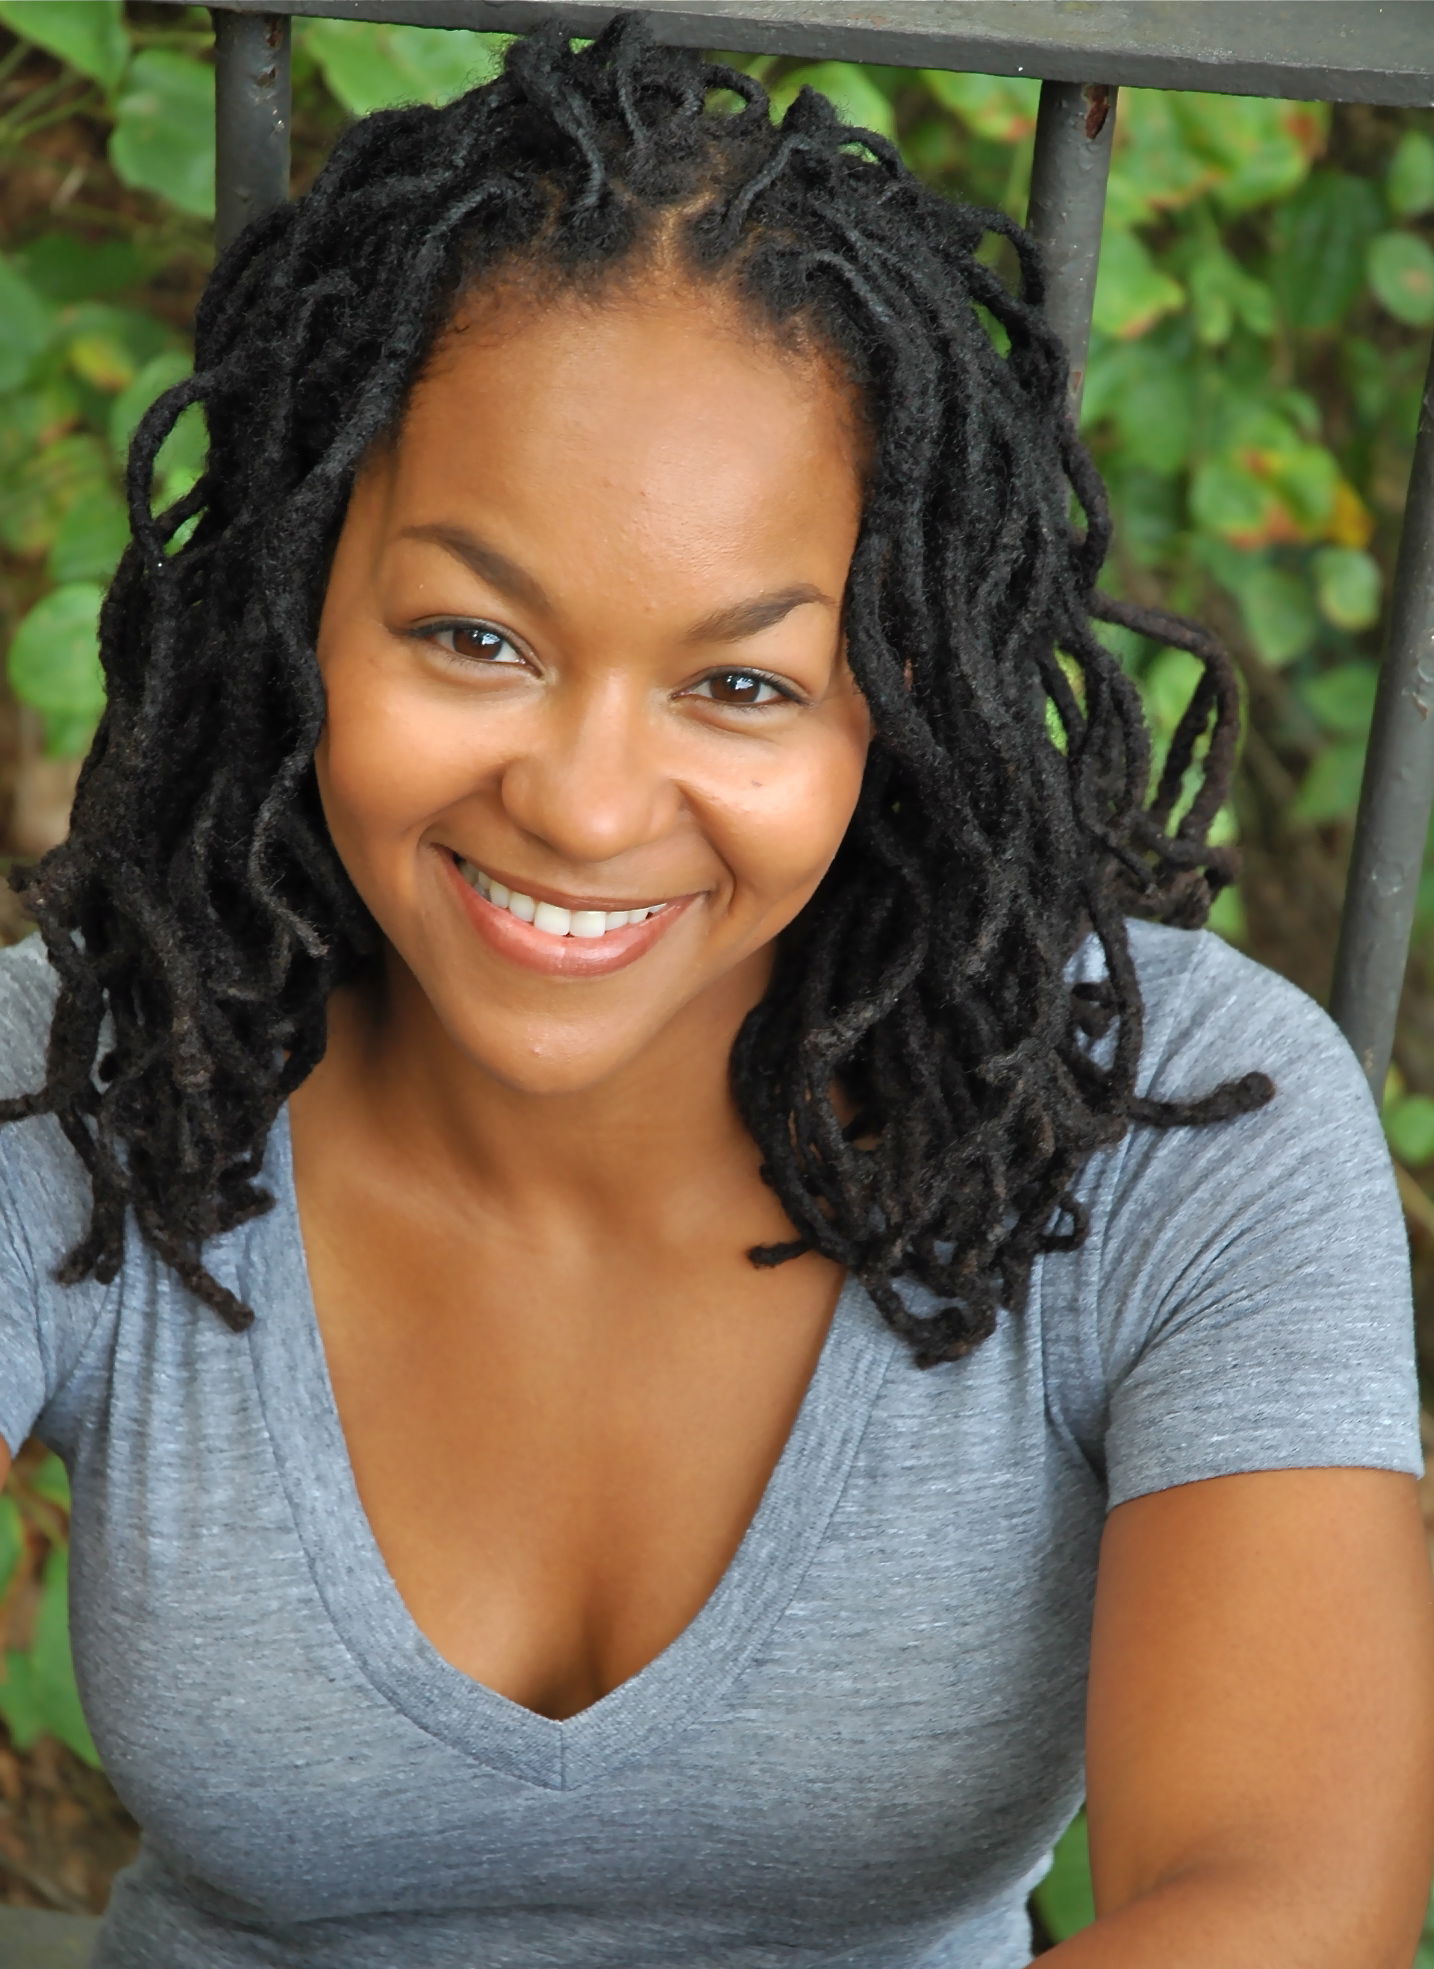 Actress Crystal Dickinson will appear in